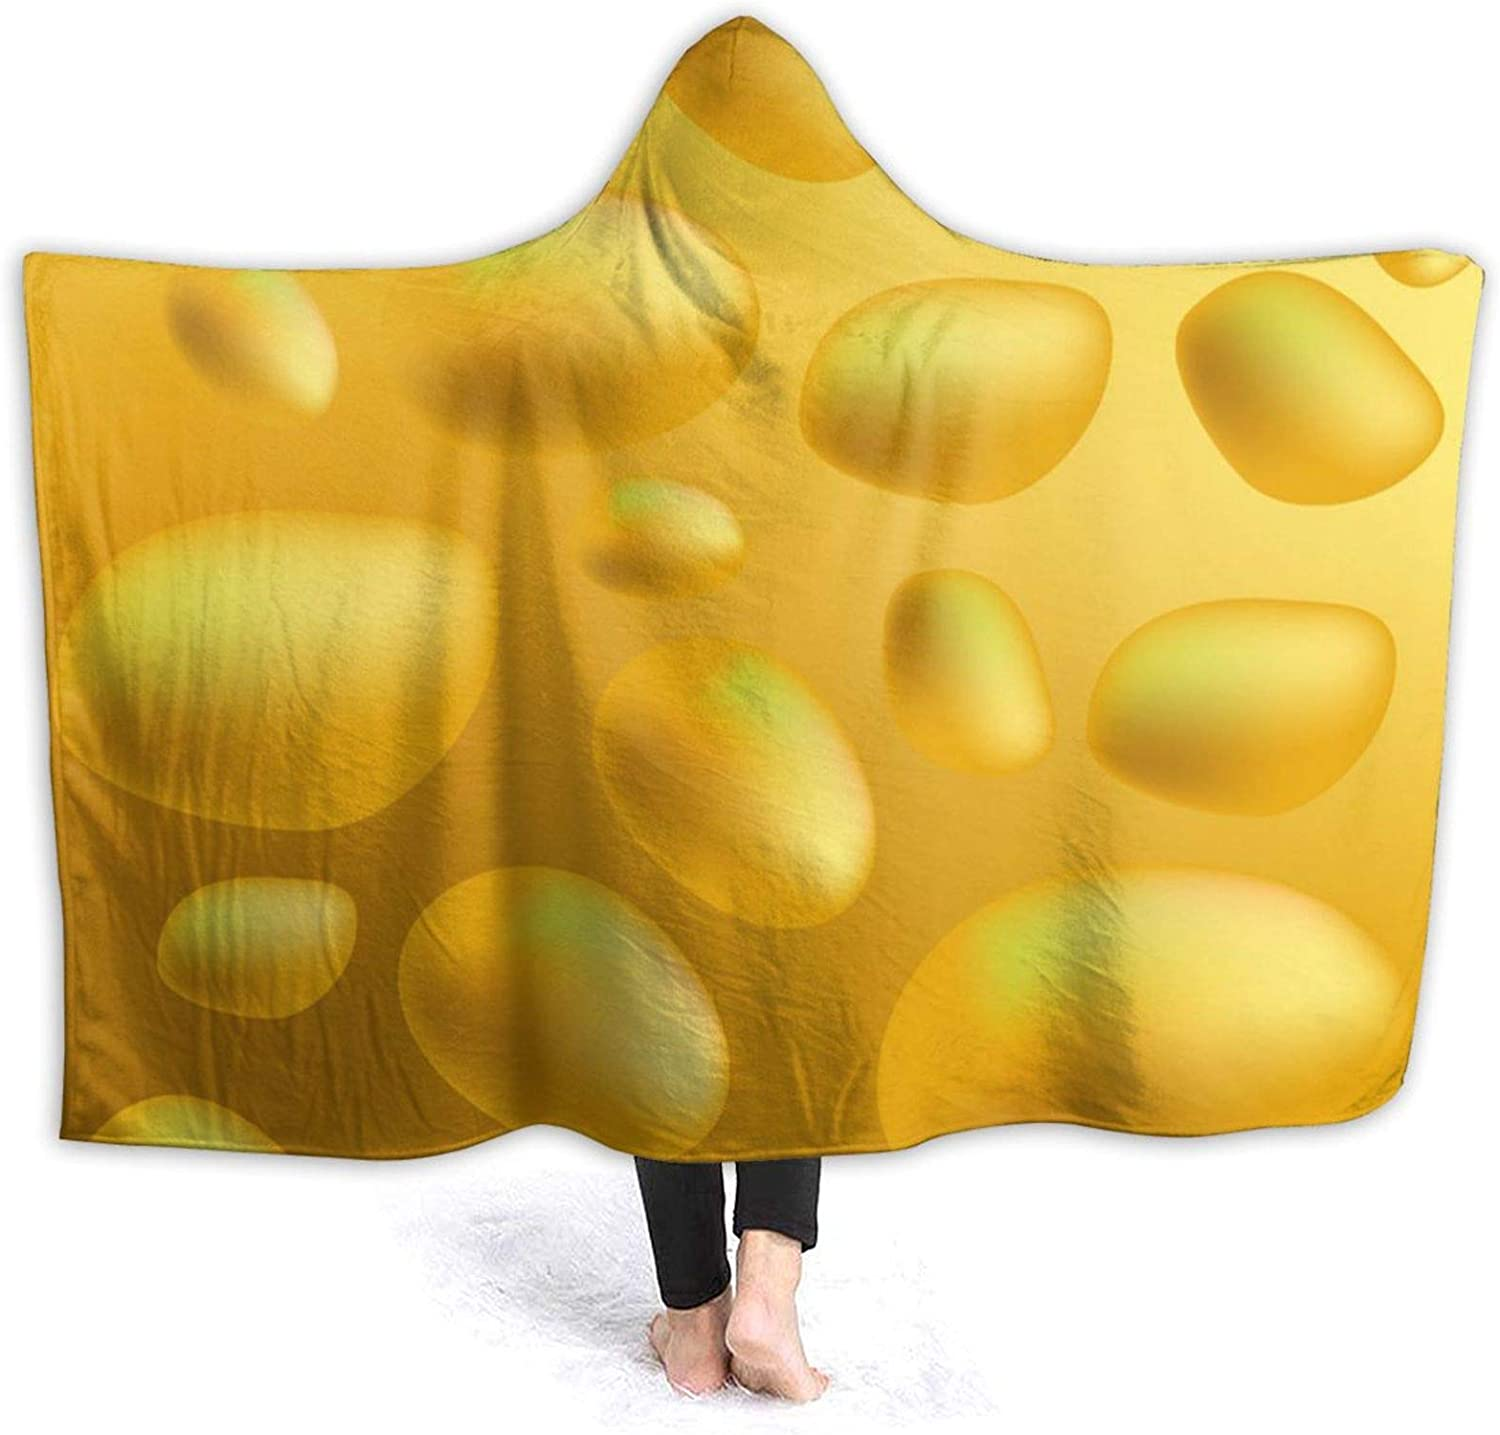 Suining Potato Max 90% OFF Texture Beauty products Blanket with Women Sherpa Blan Hood Throw